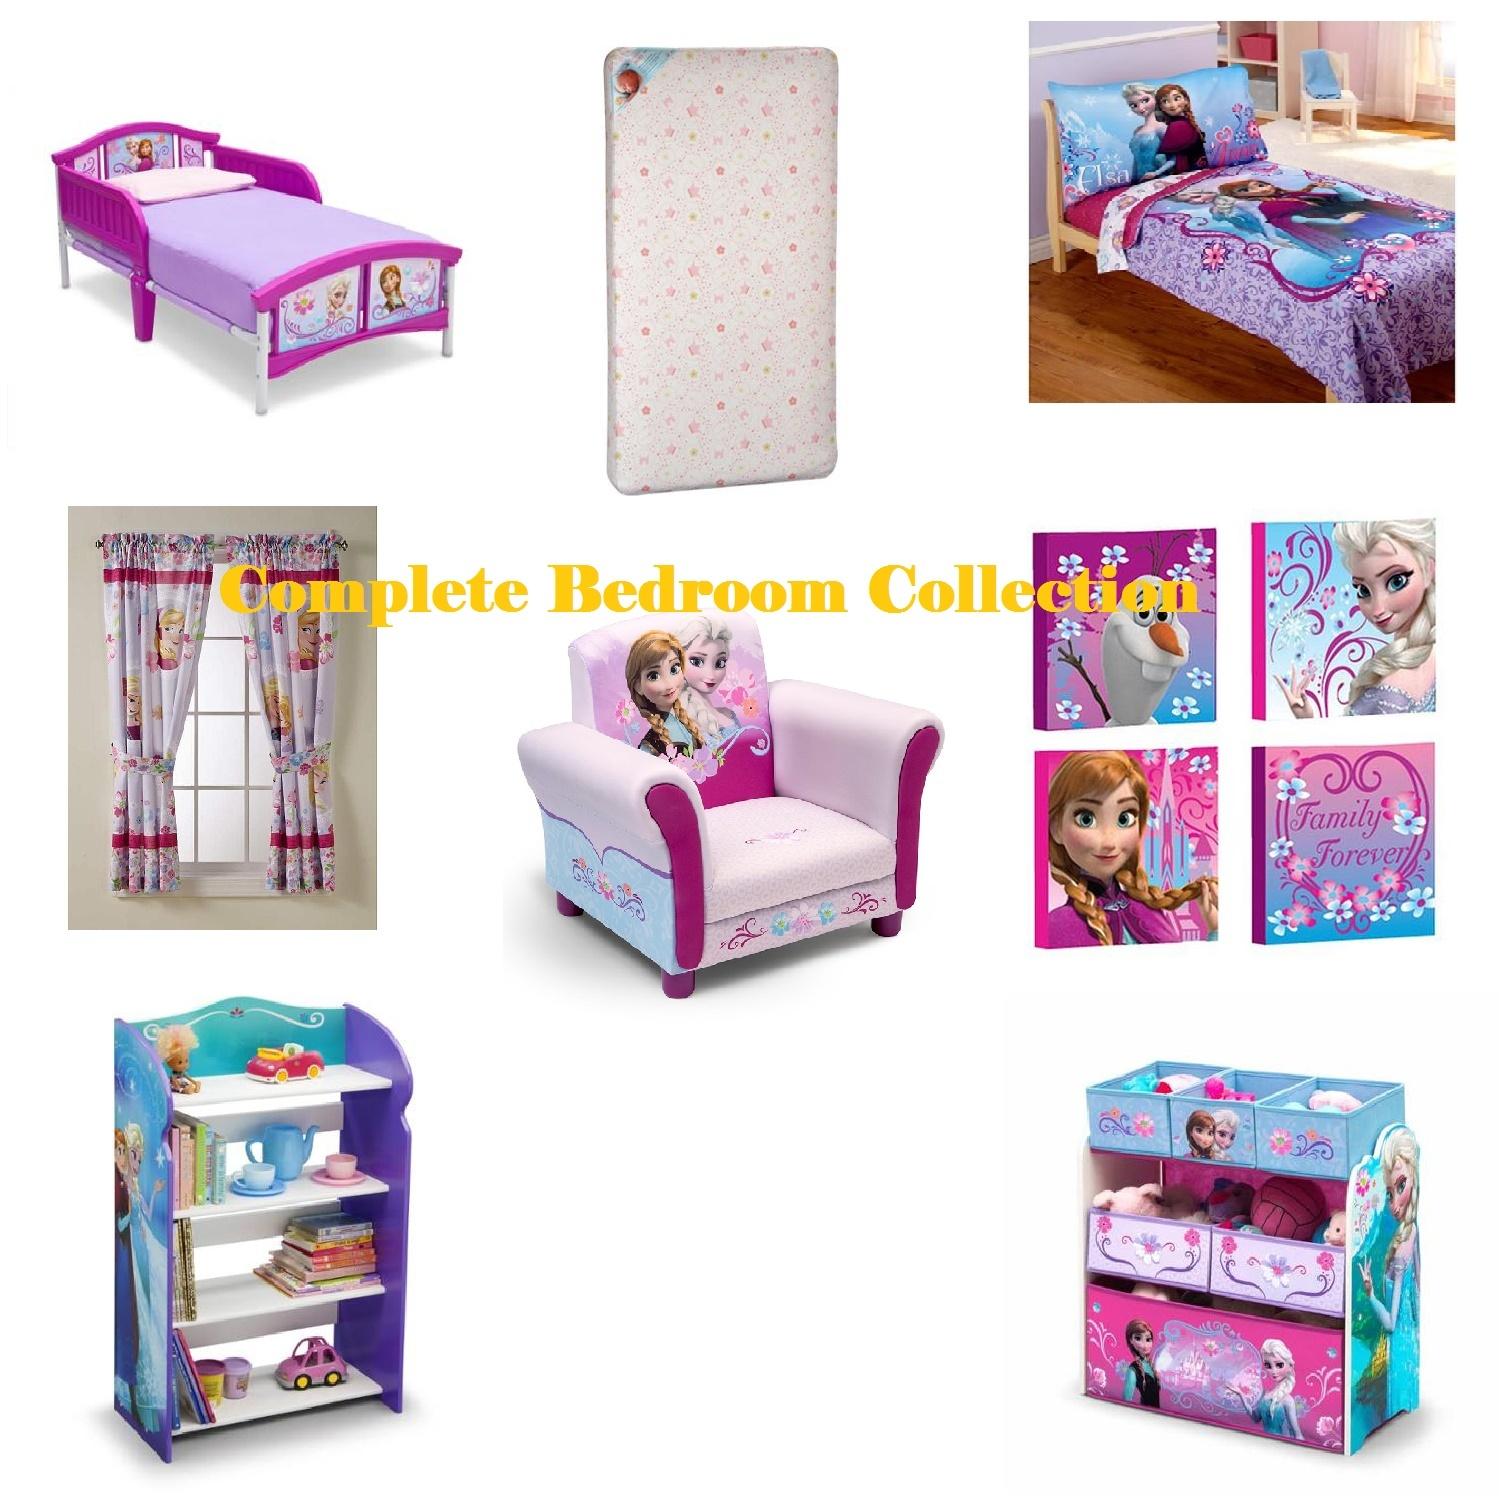 Toddler plete Bedroom Furniture and Bedding Collection